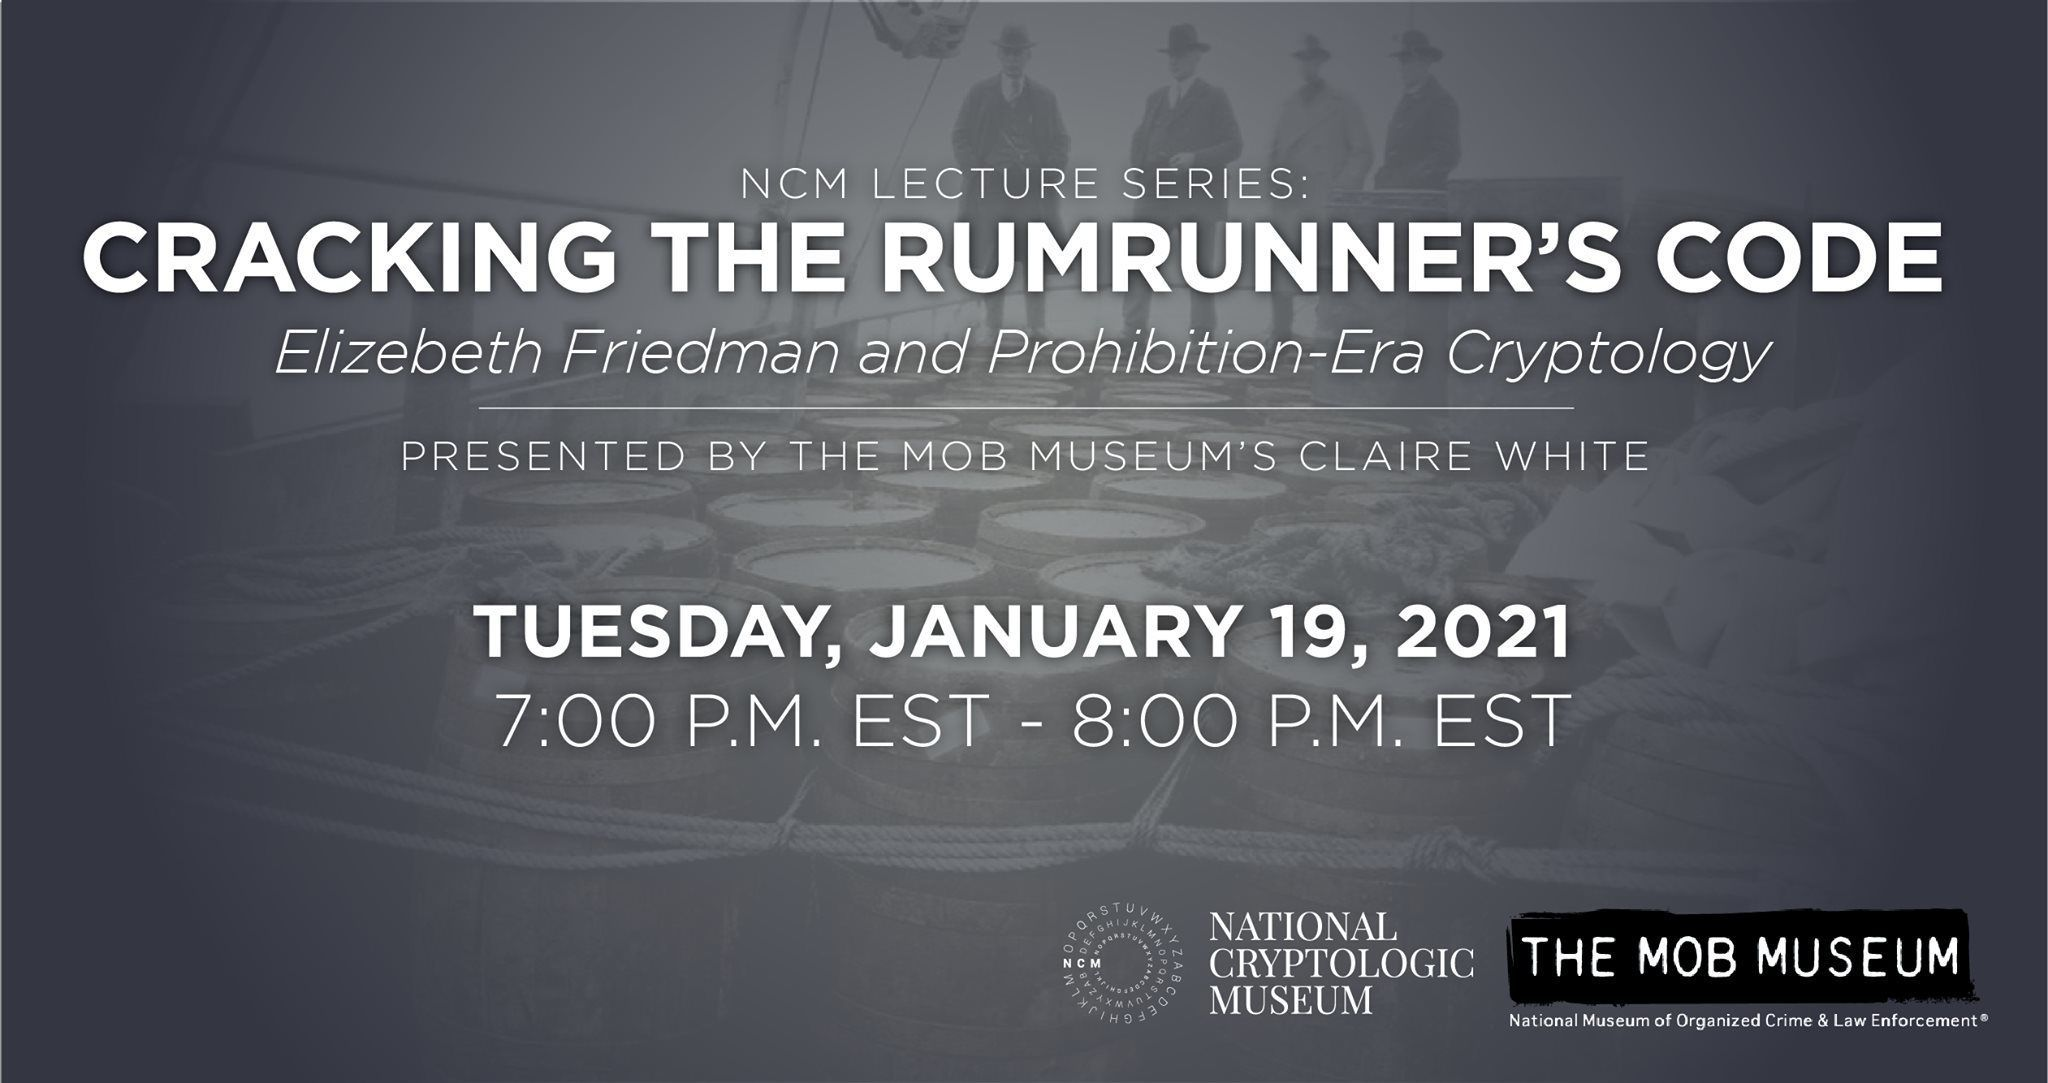 Cracking the Rumrunner's Code: Elizebeth Friedman and Prohibition-Era Cryptology